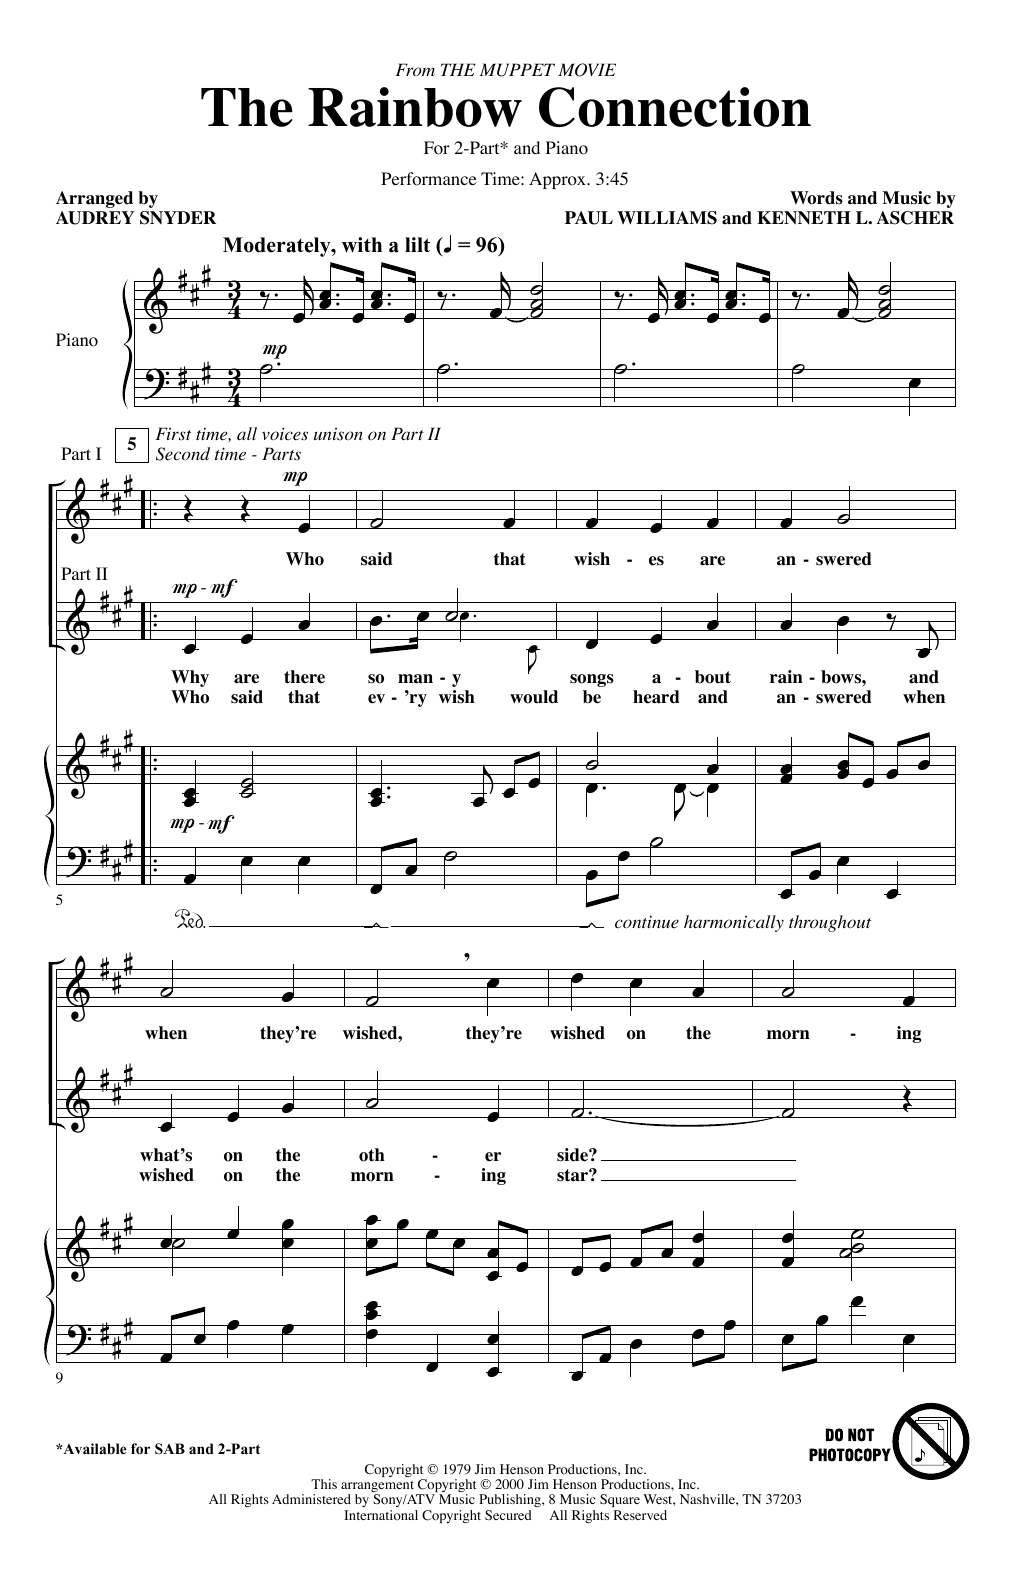 The Rainbow Connection (arr. Audrey Snyder) Sheet Music